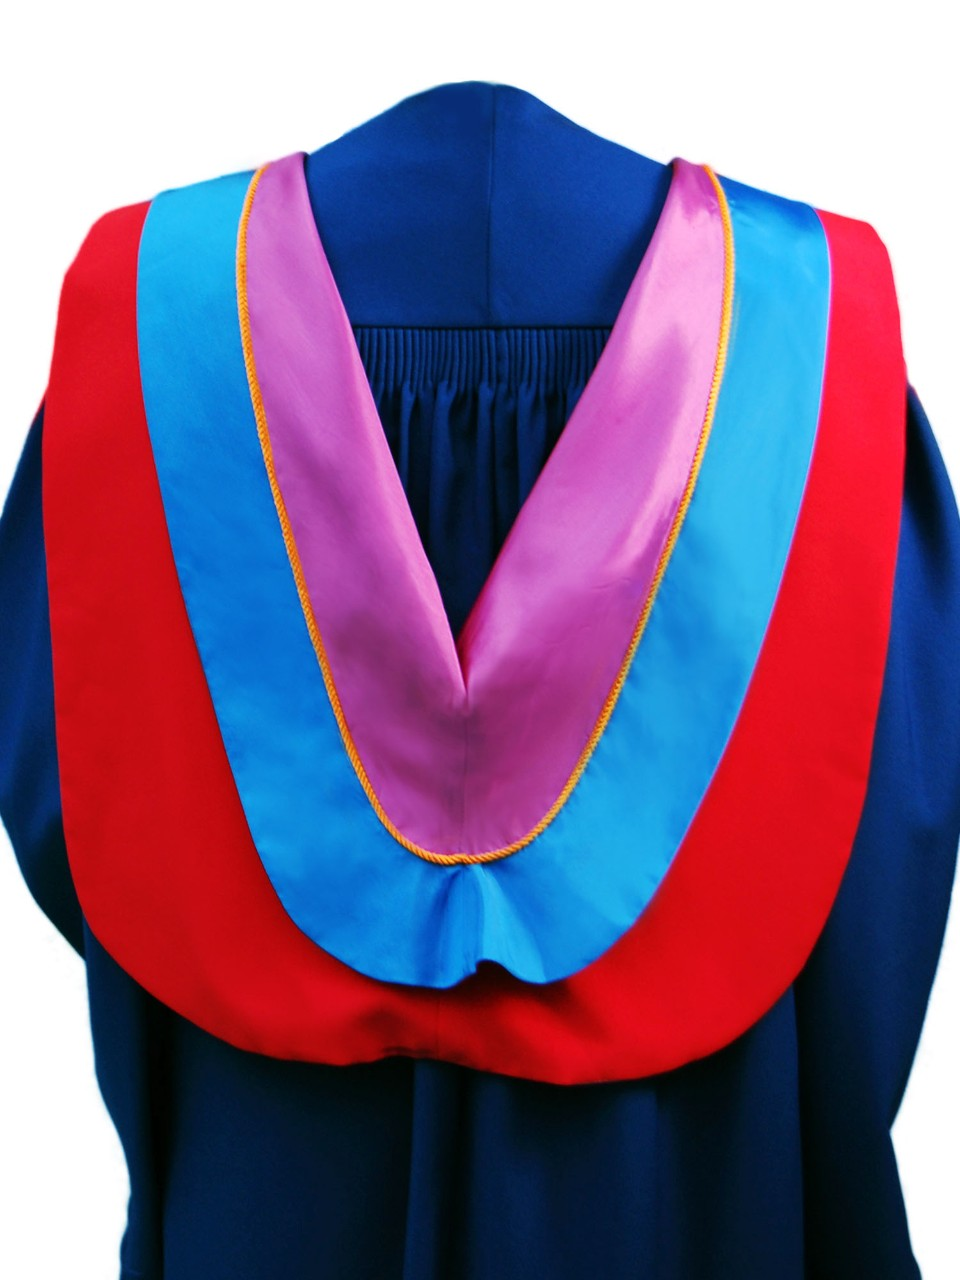 The Master of Arts in Liberal Studies hood is Red with wide blue border, orange cording and plum underside